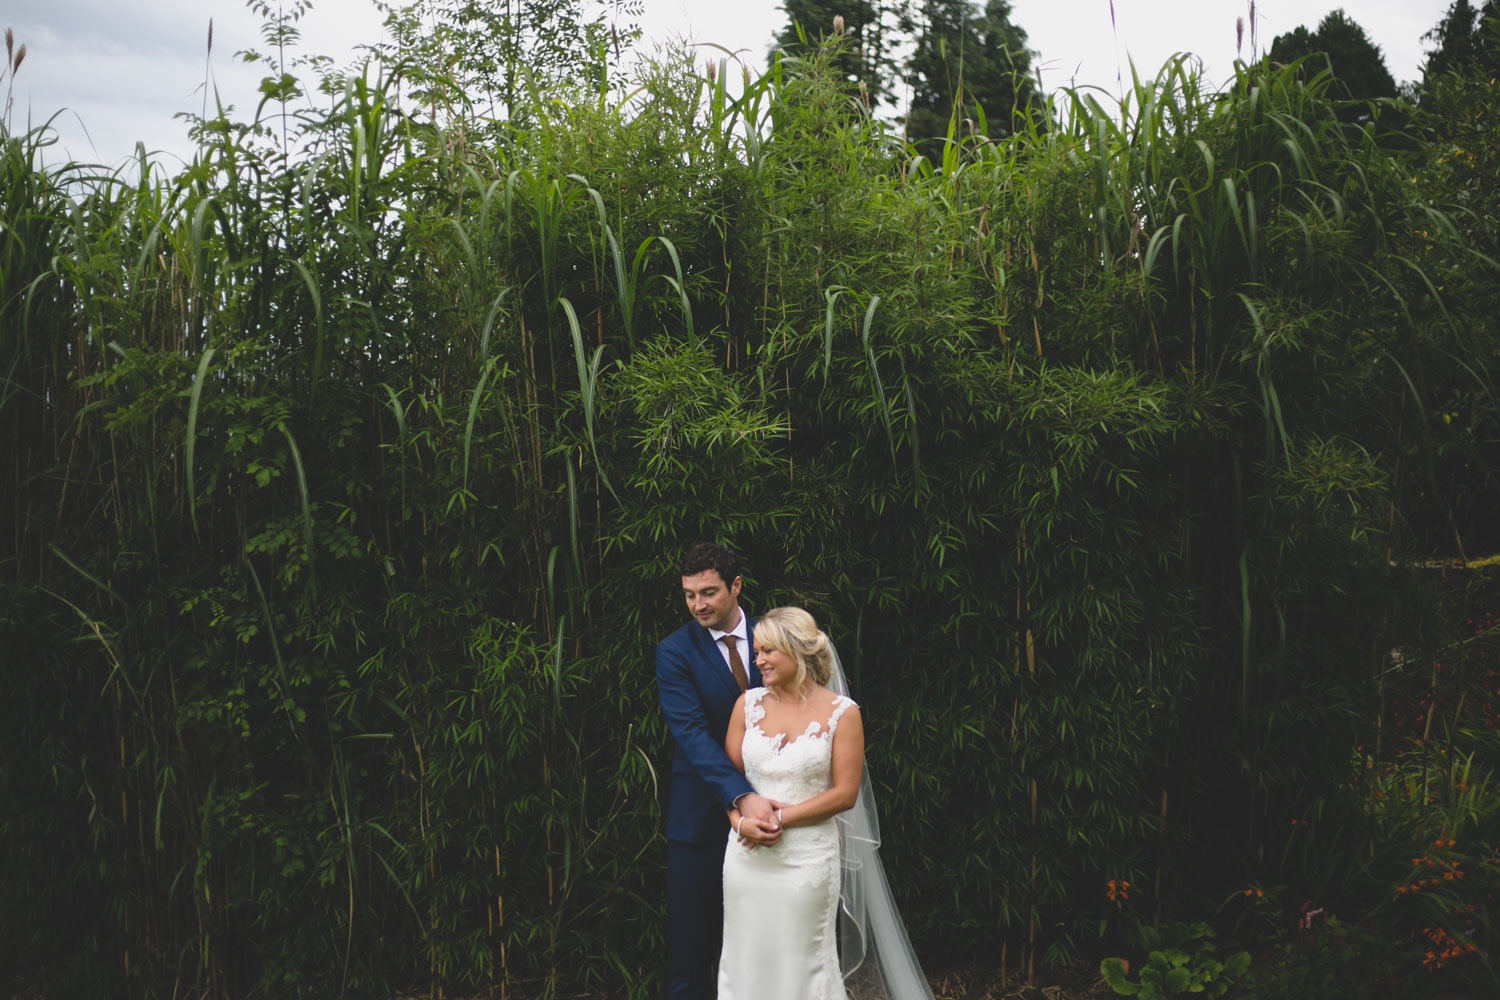 beautiful bamboo plants and greenery at Ballybeg wedding venue